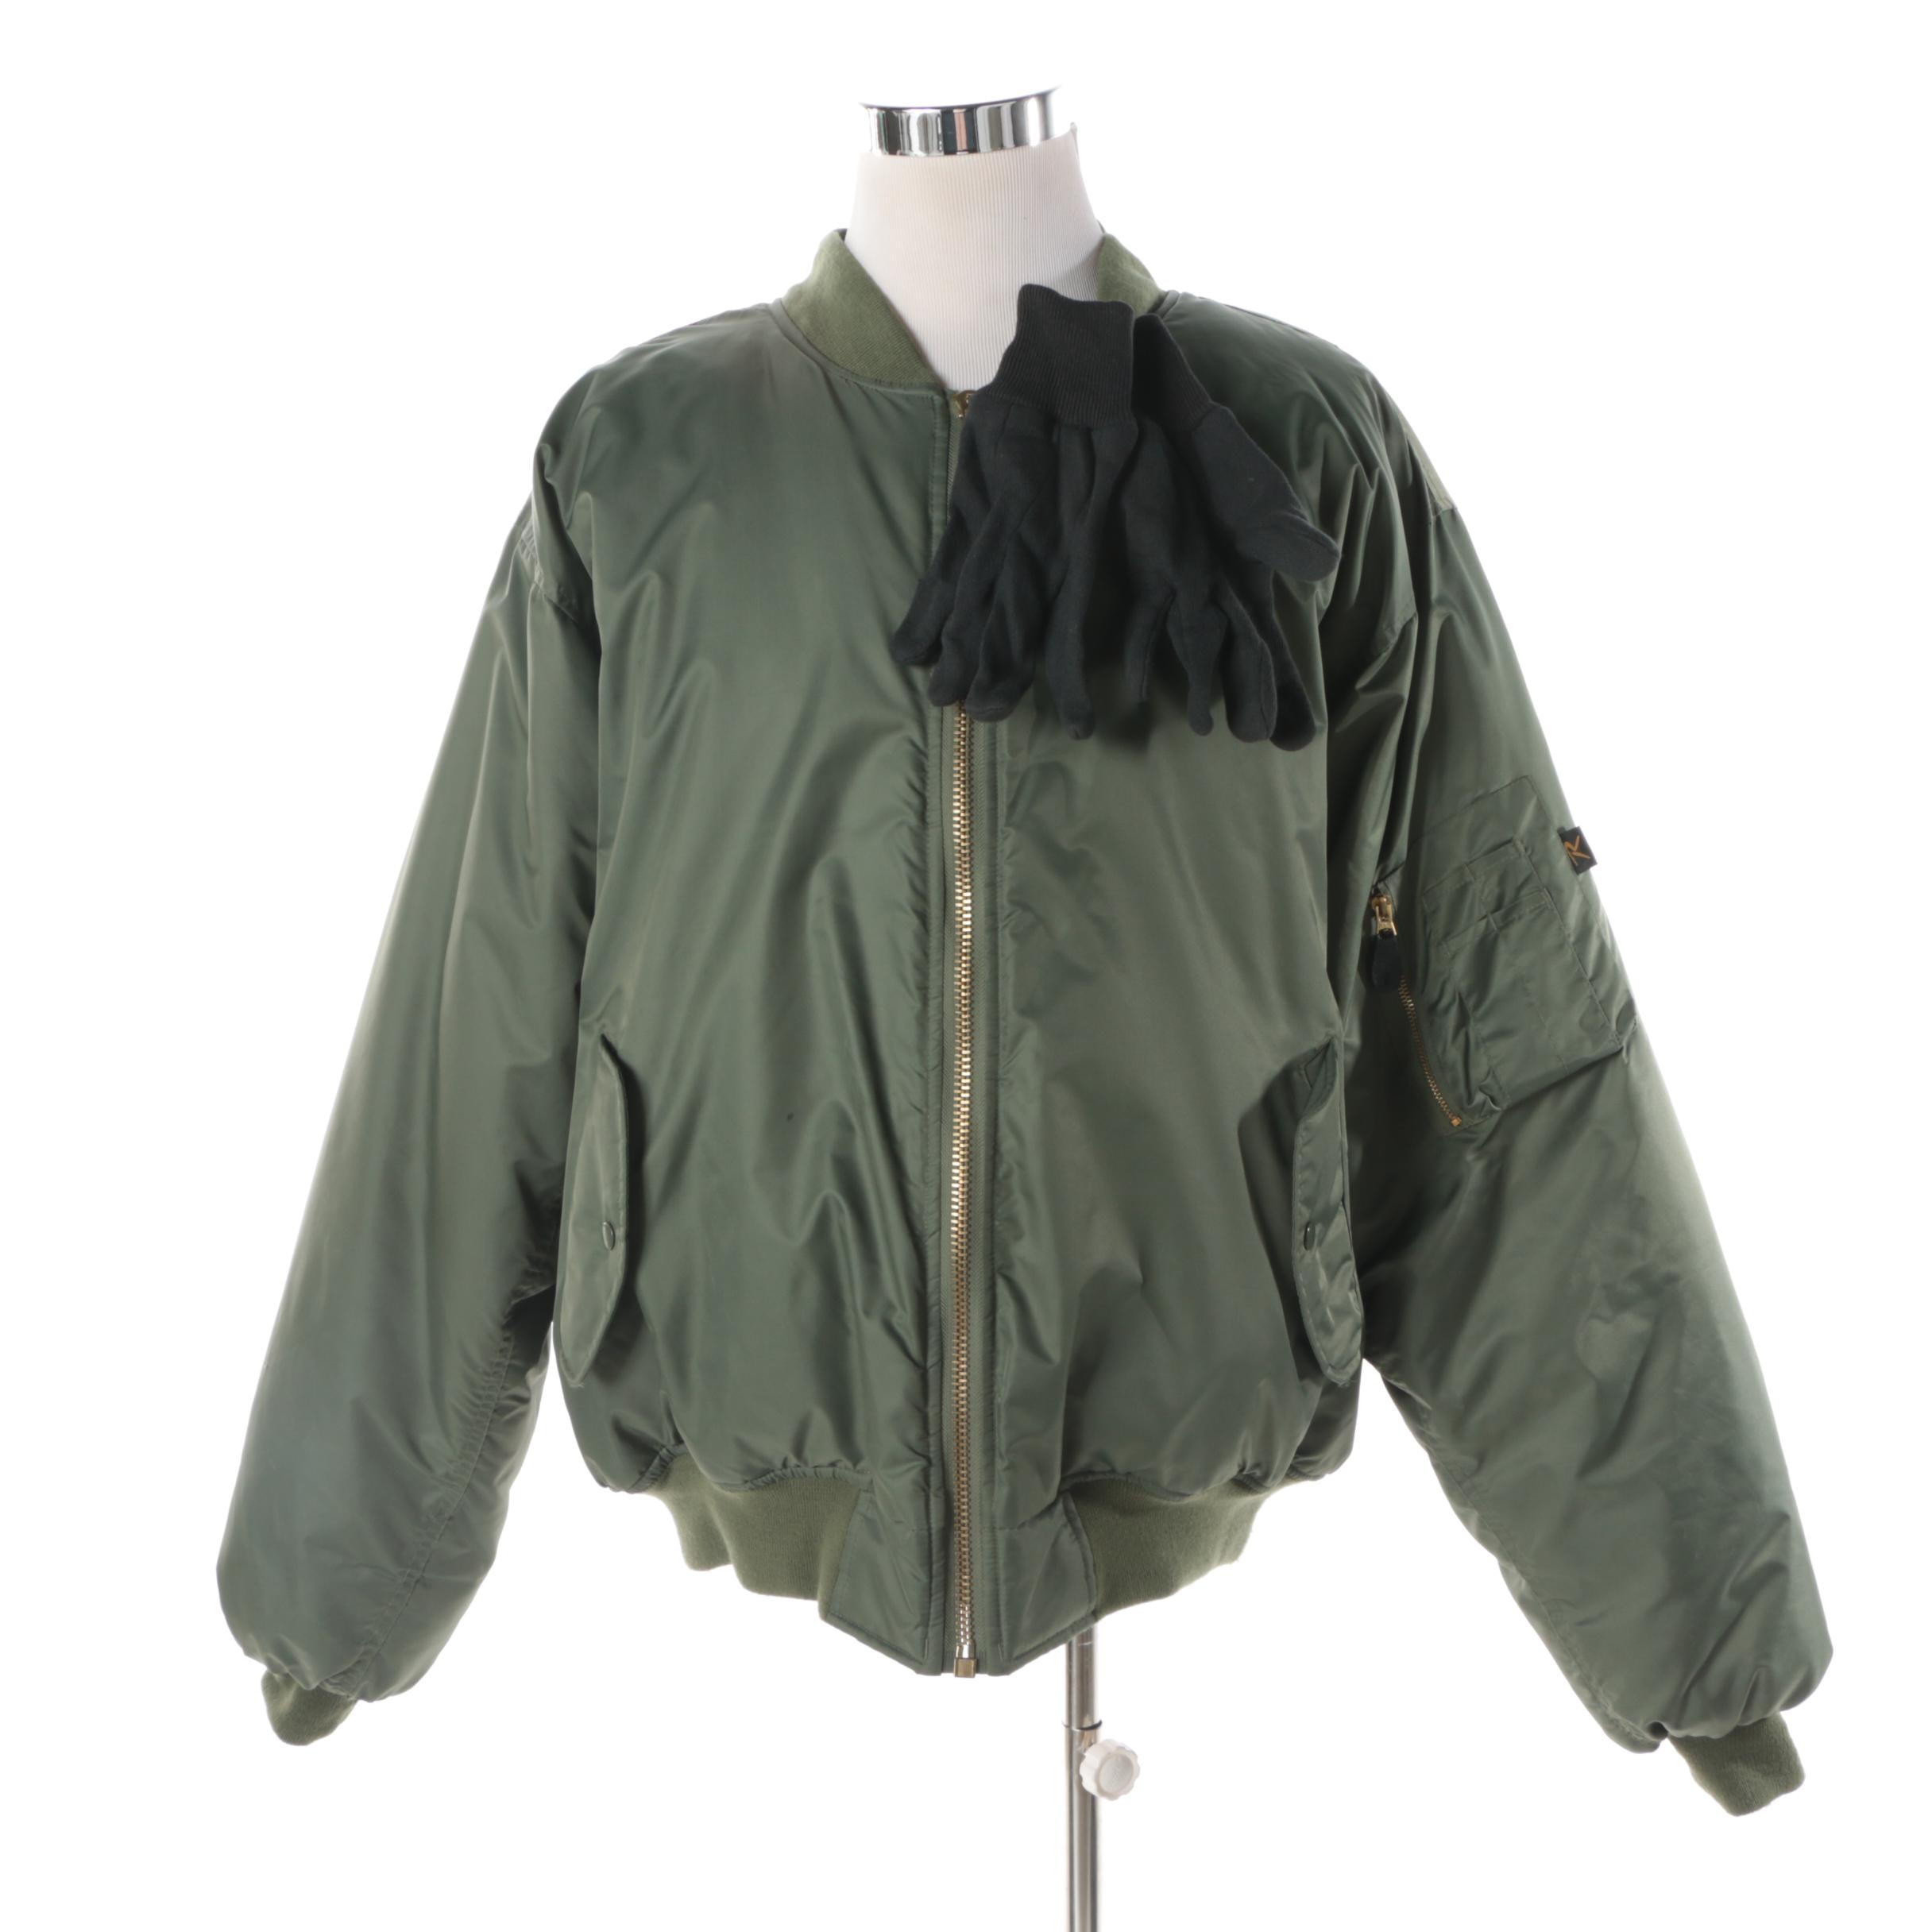 Men's Rothco Ultra Force Green Bomber Style Jacket and Pair of Gloves